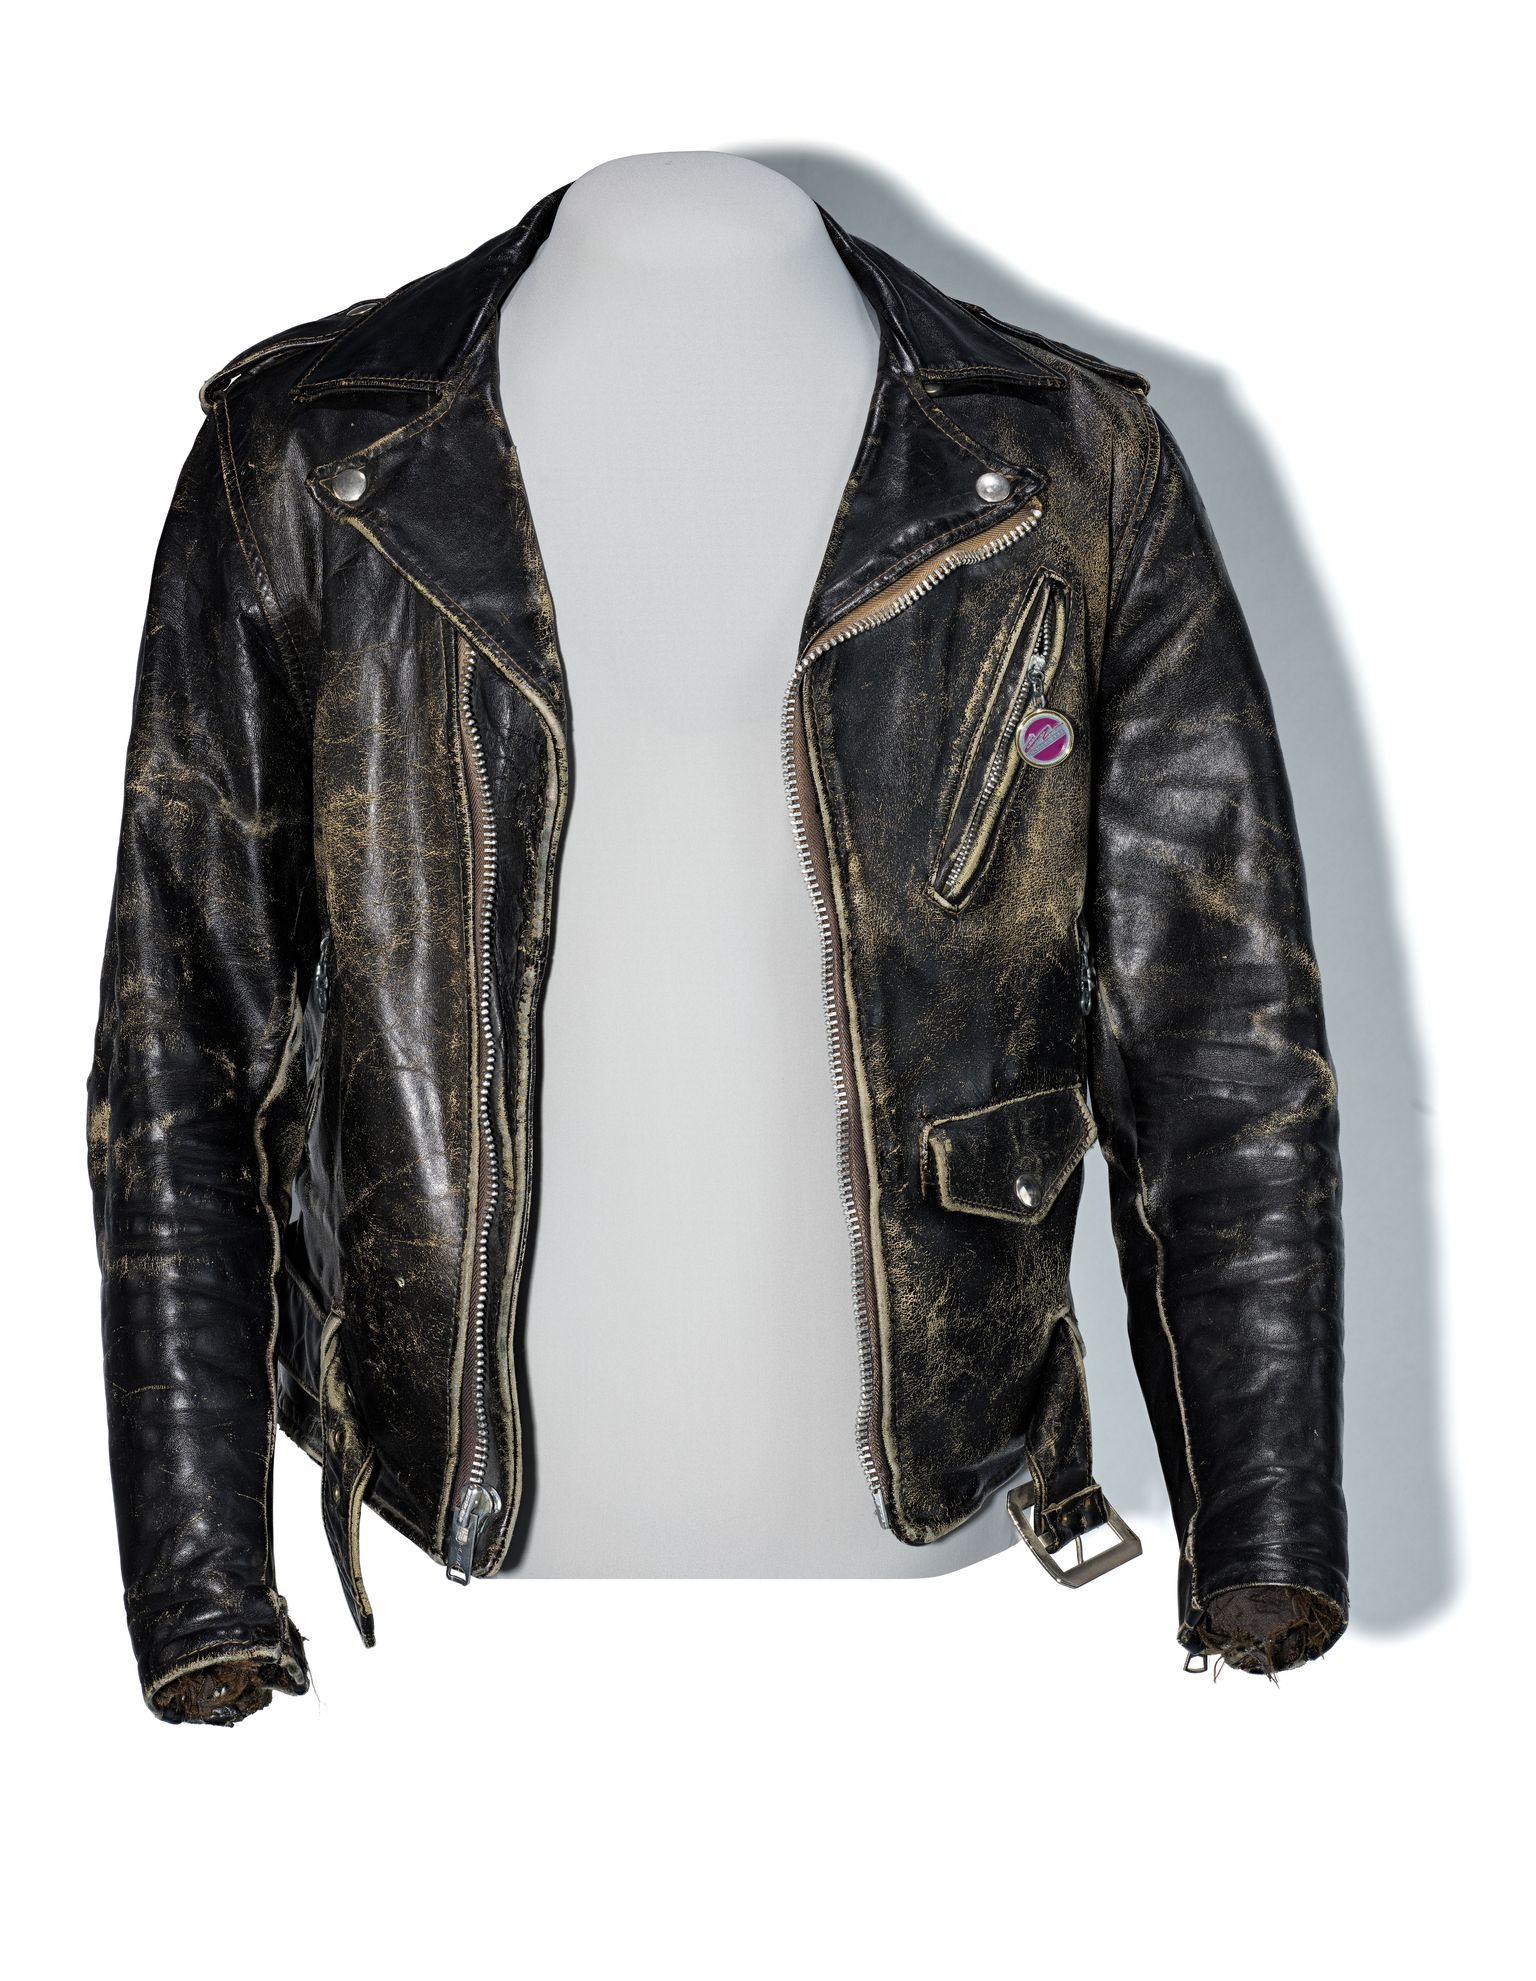 A weathered leather jacket